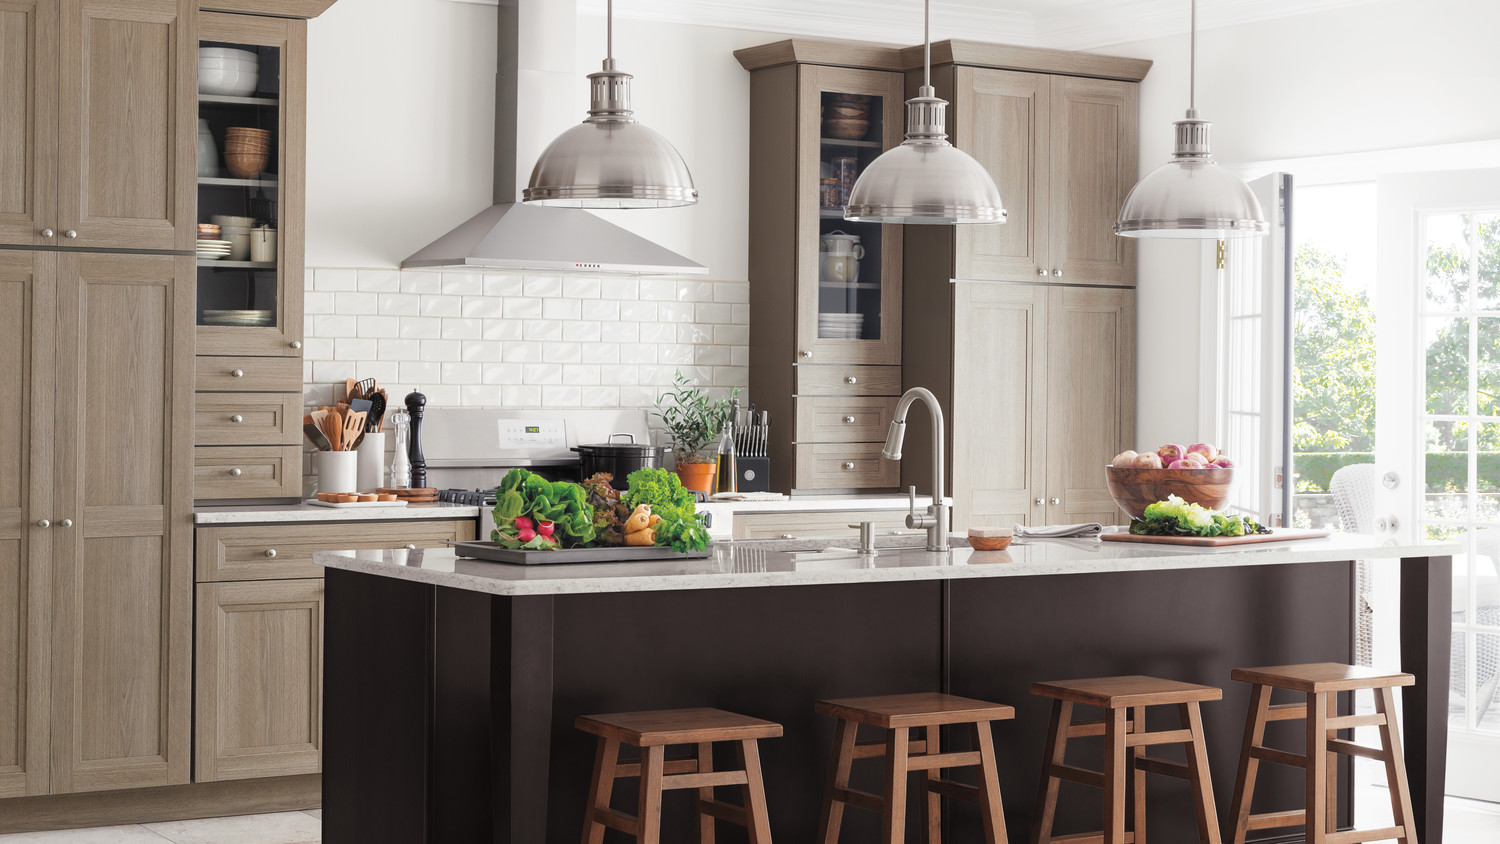 Kitchen Design Video Martha Stewart Shares Her Kitchen Design Inspiration .